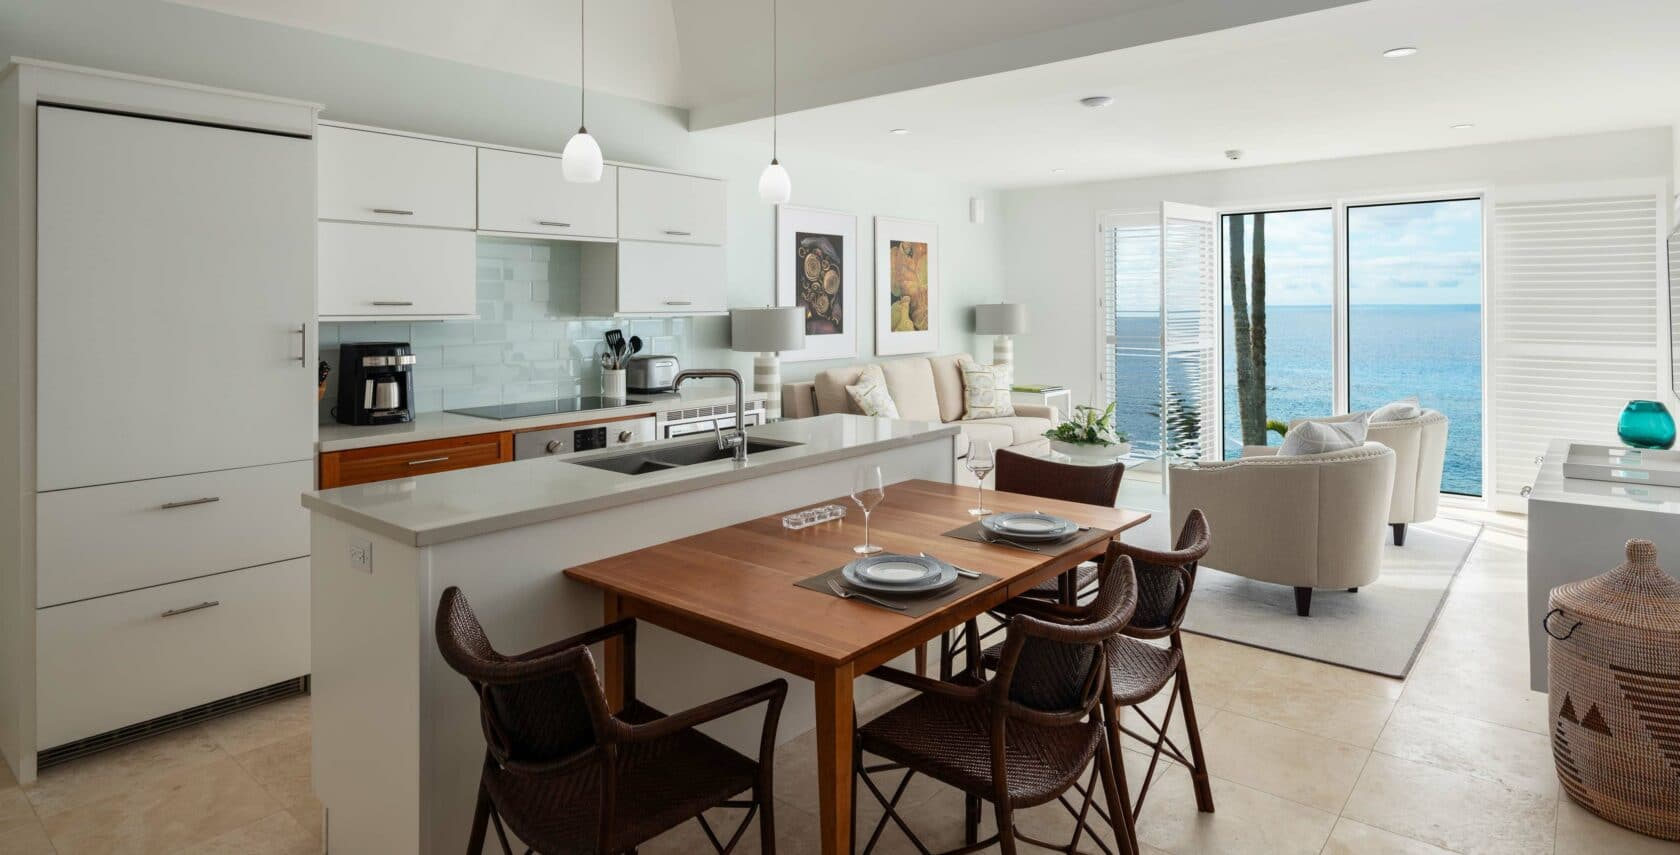 A kitchen area with white cabinets and a brown dining table.